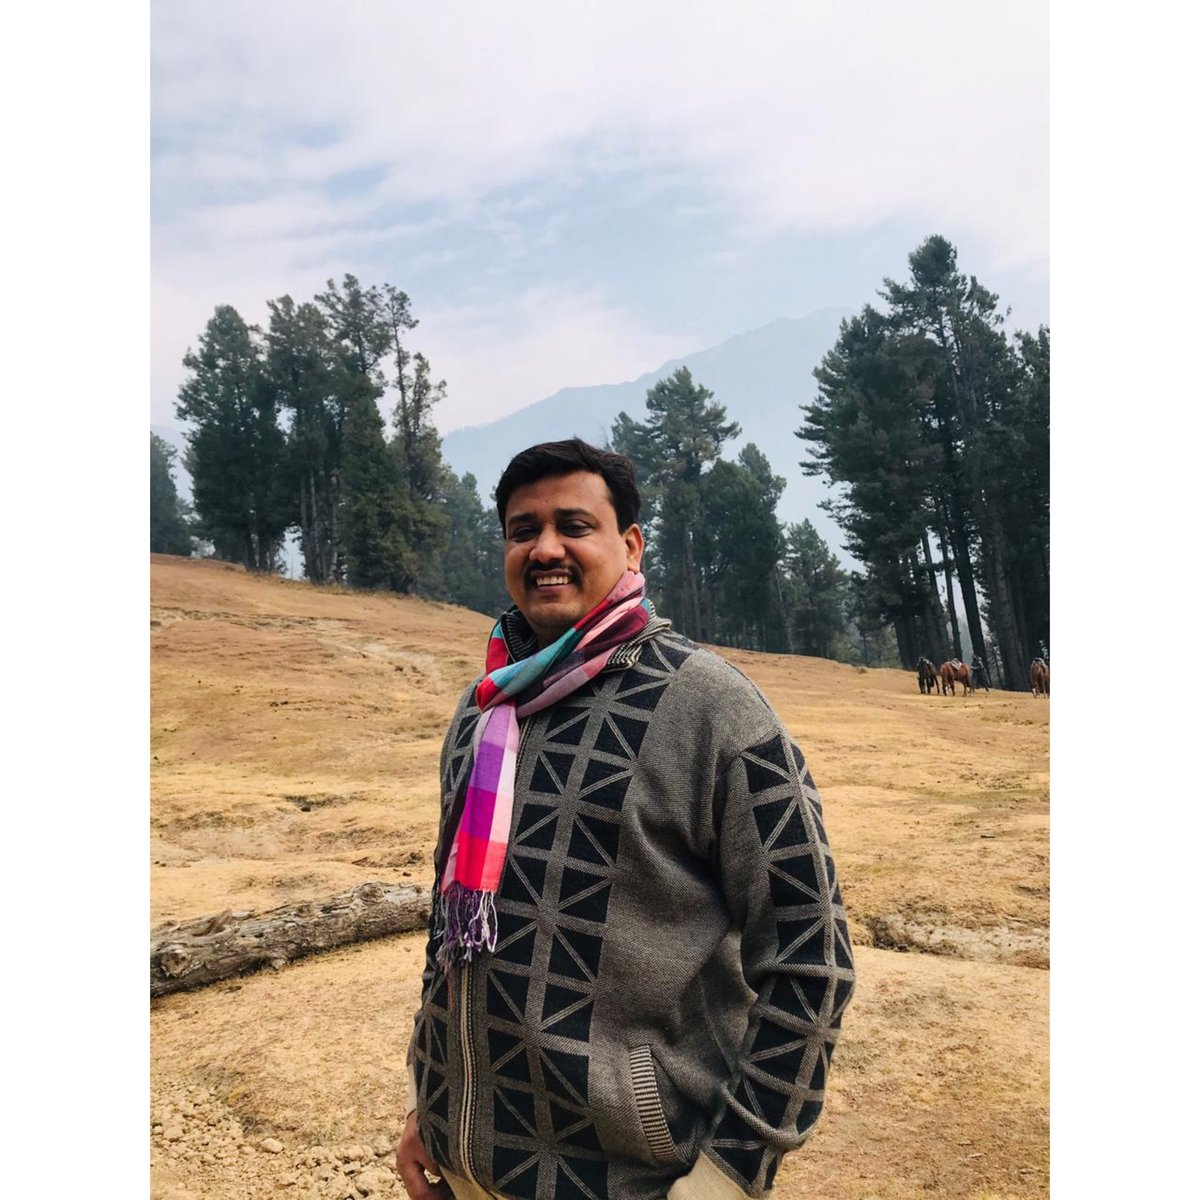 """""""Learn to value yourself, which means: fight for your happiness."""" . . . #happiness #goodvibes #exploreme #nature #love #peace #sandipkale #Sandipkalejournalist #media #vacation #kashmir #like4like #follow4follow #love #share #comment #sandipkalebooks #saam #sakal #india #mumbai"""